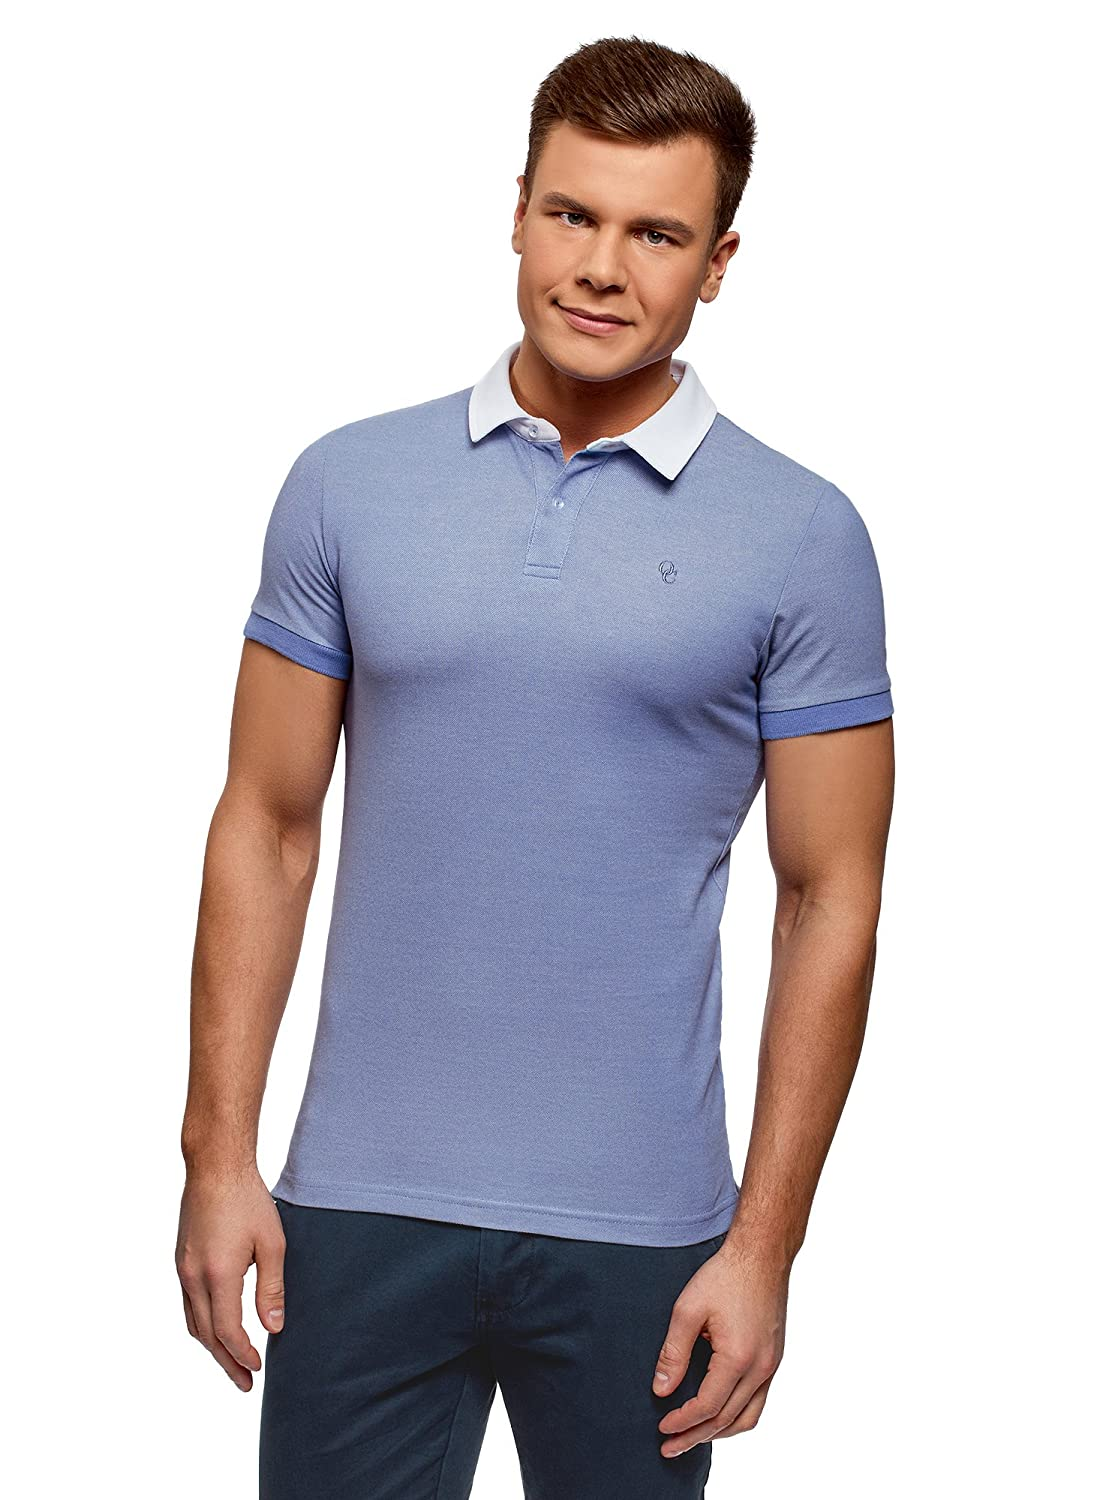 Oodji Ultra Mens Contrast Collar Polo Amazon Clothing